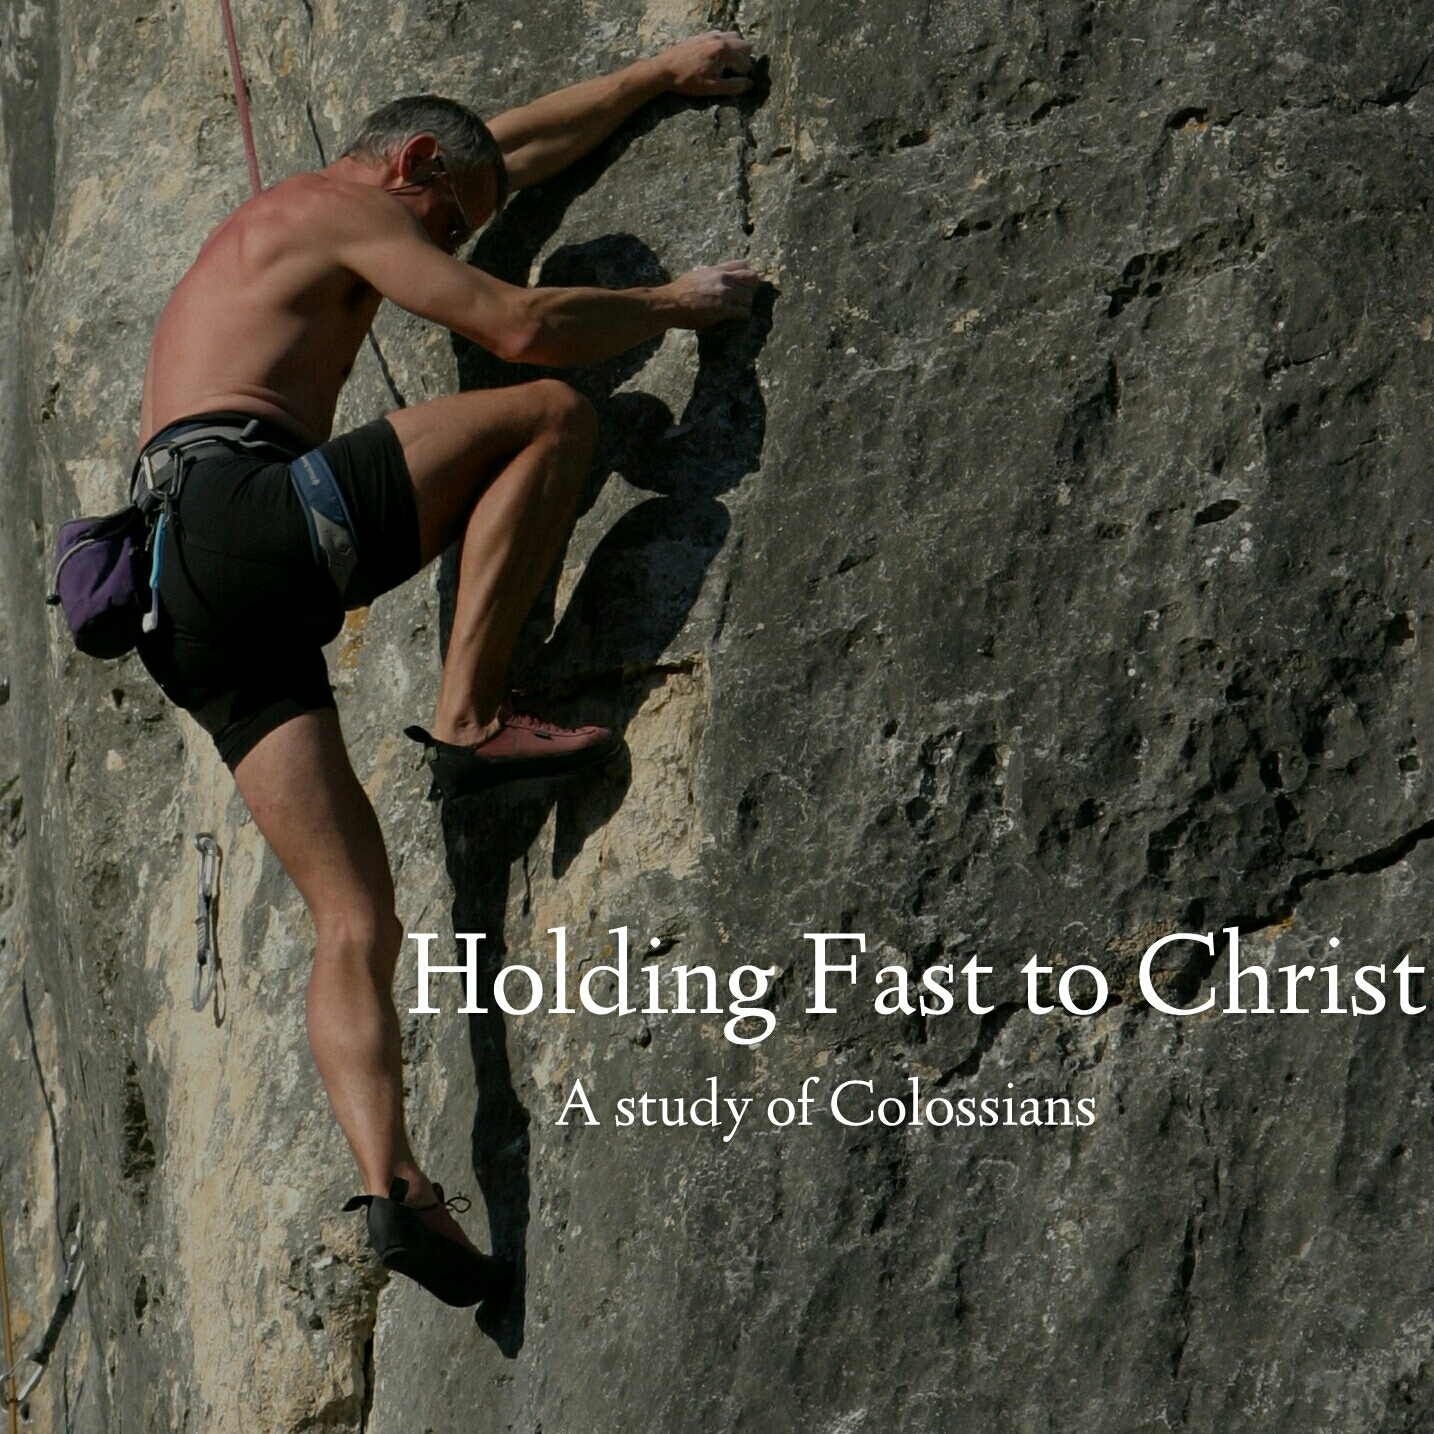 Holding Fast to Christ.jpg